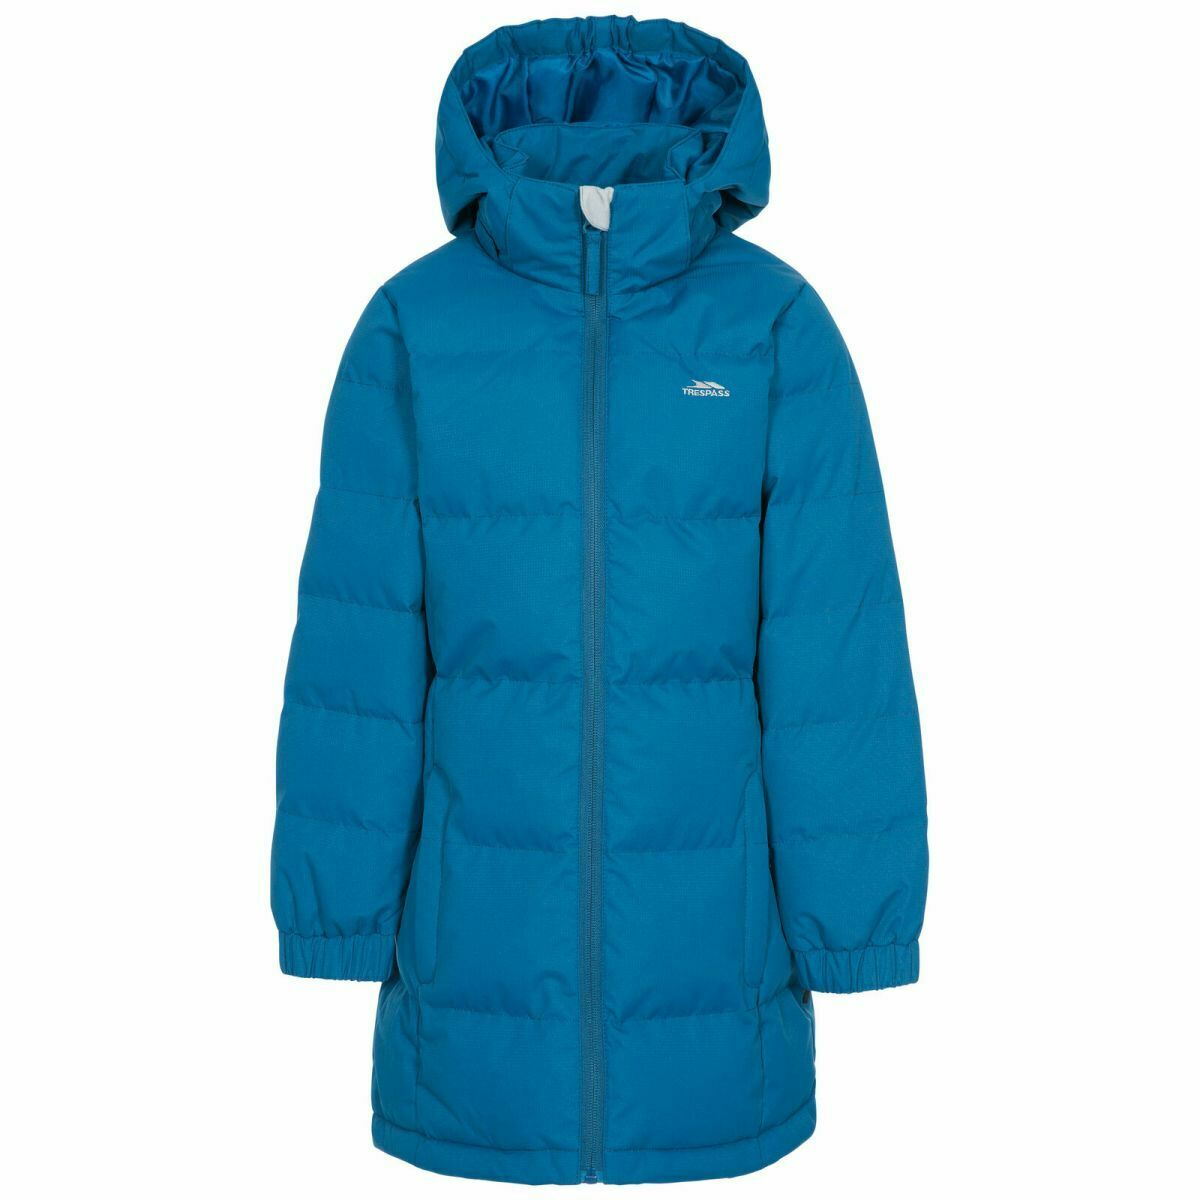 Trespass Kid's Puffa Jacket Various Colours Tiffy - Cosmic Blue 11 to 12 Years